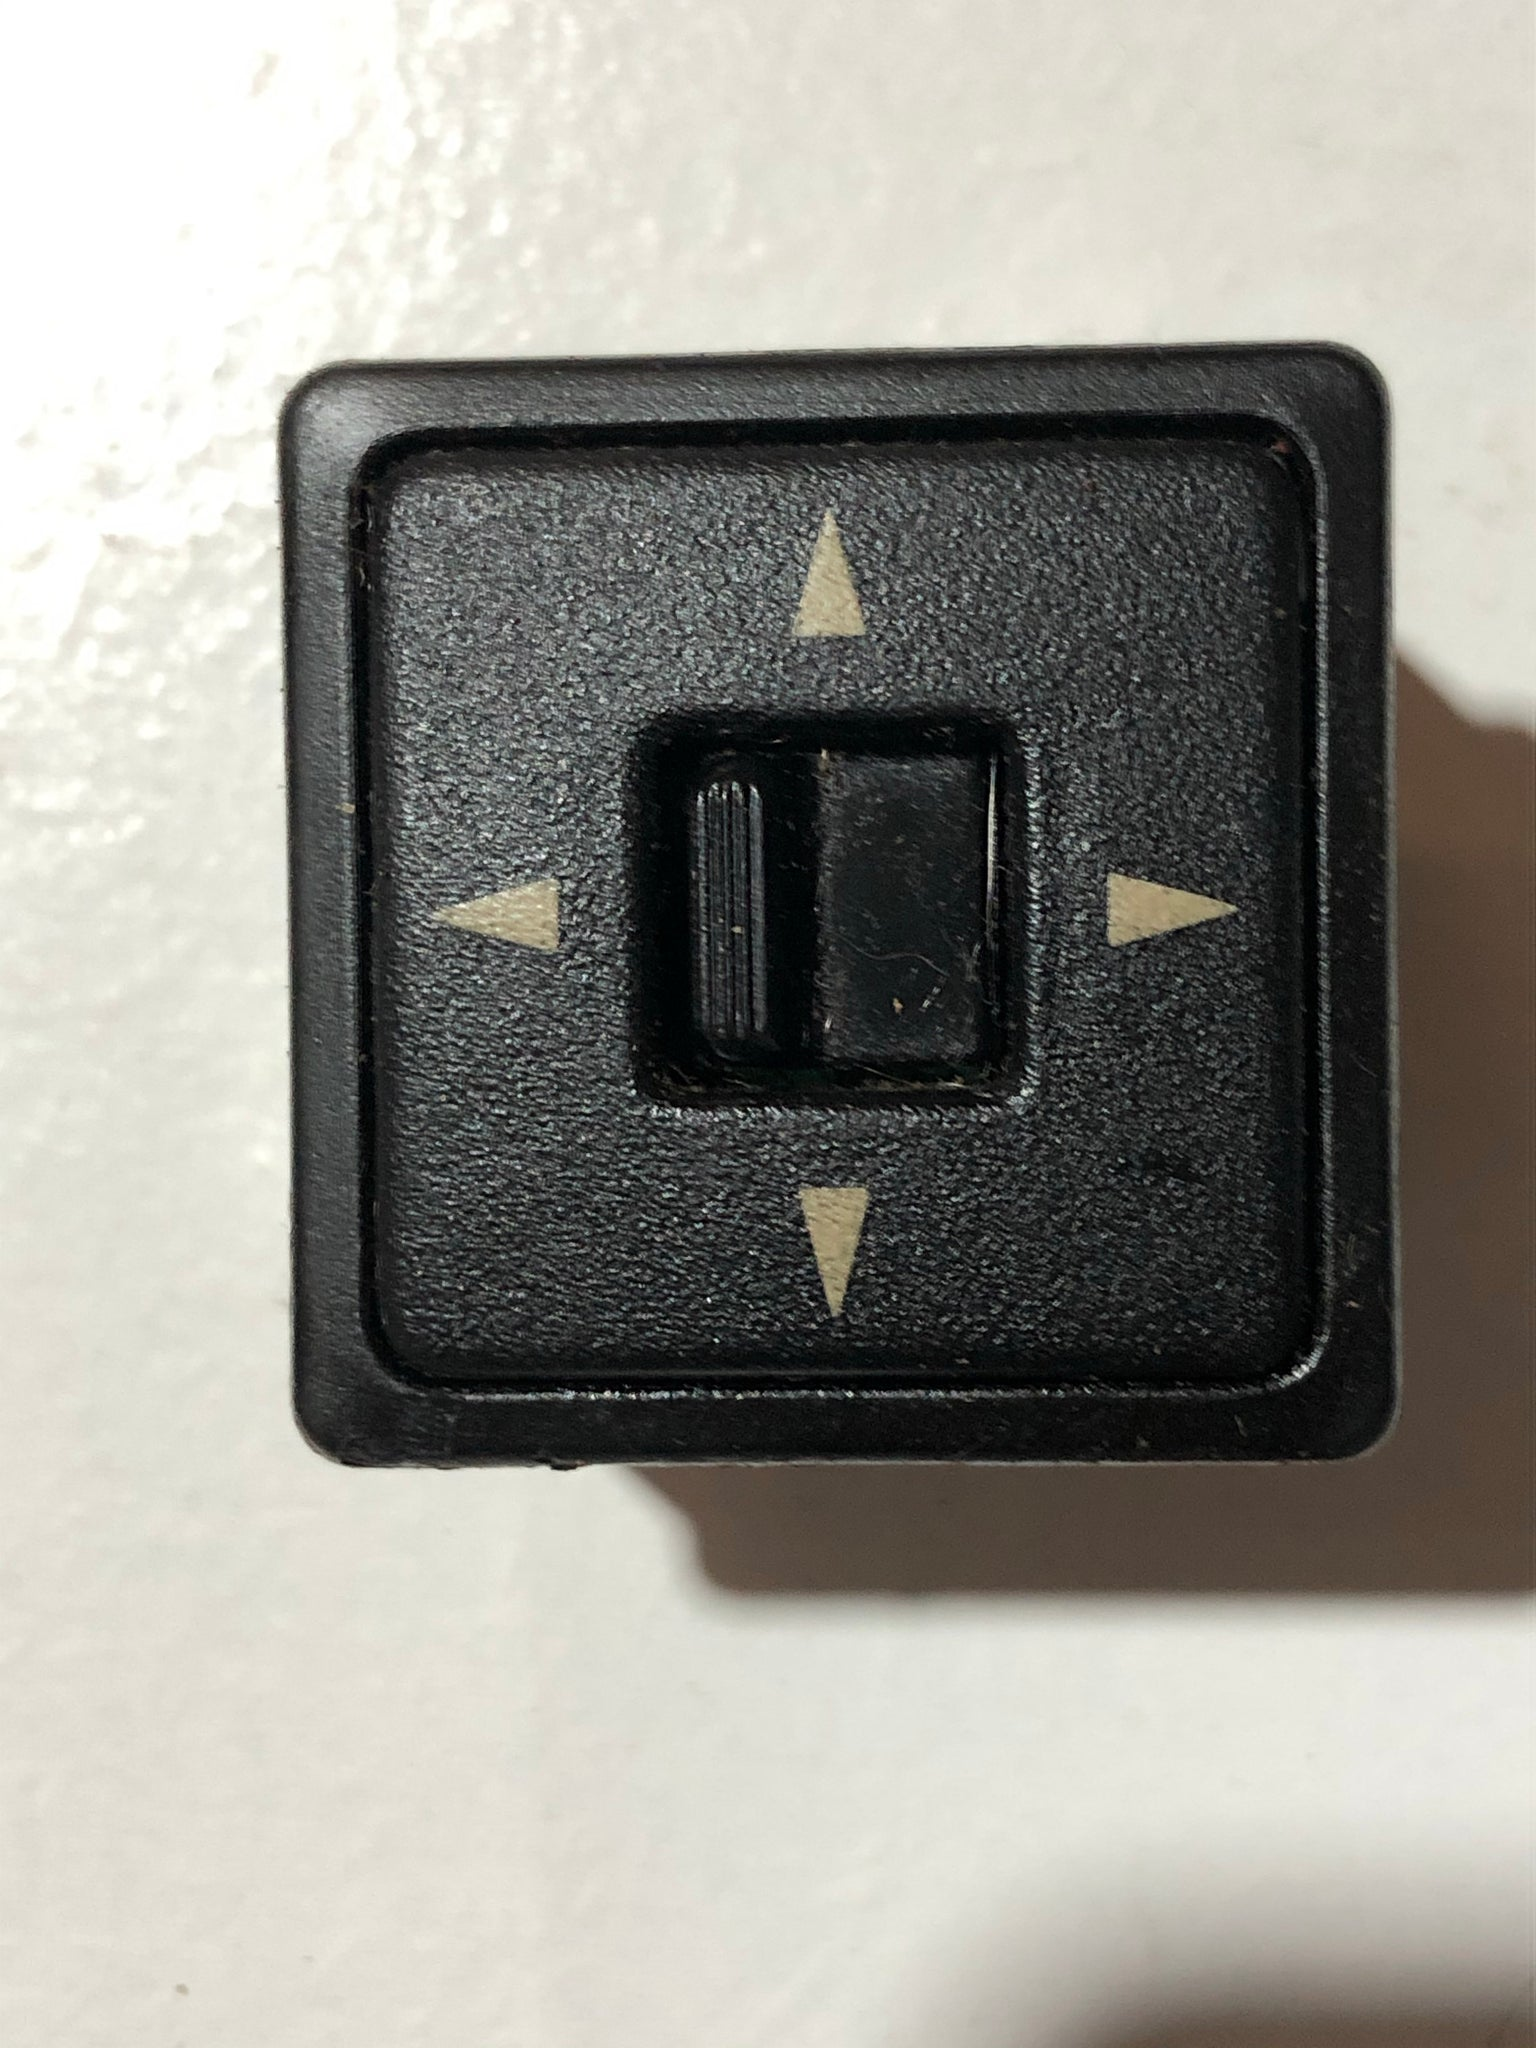 1990-2005 Mazda Miata Power Mirror Switch